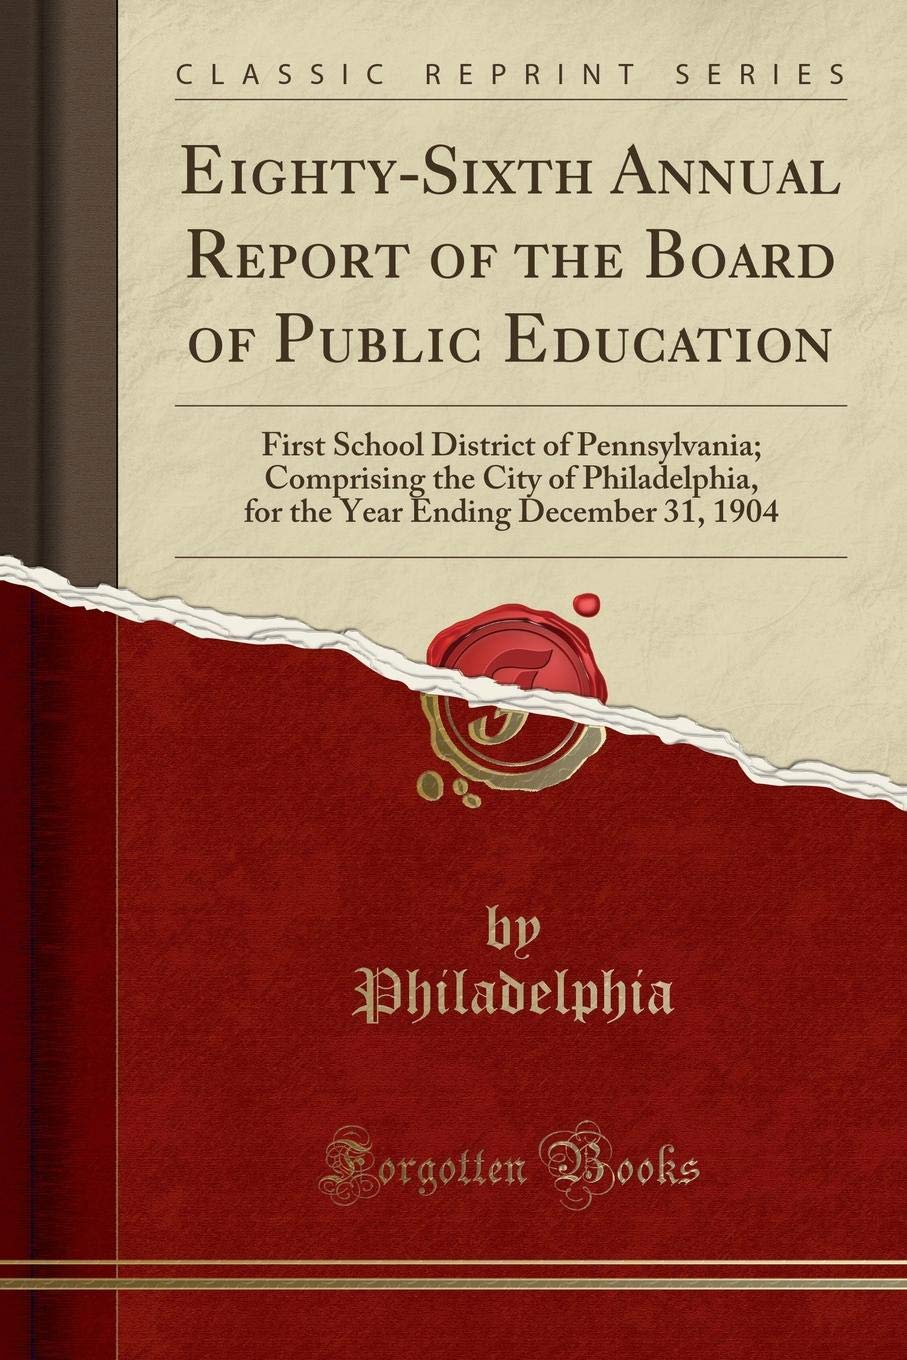 Eighty-Sixth Annual Report of the Board of Public Education: First School District of Pennsylvania; Comprising the City of Philadelphia, for the Year Ending December 31, 1904 (Classic Reprint) PDF